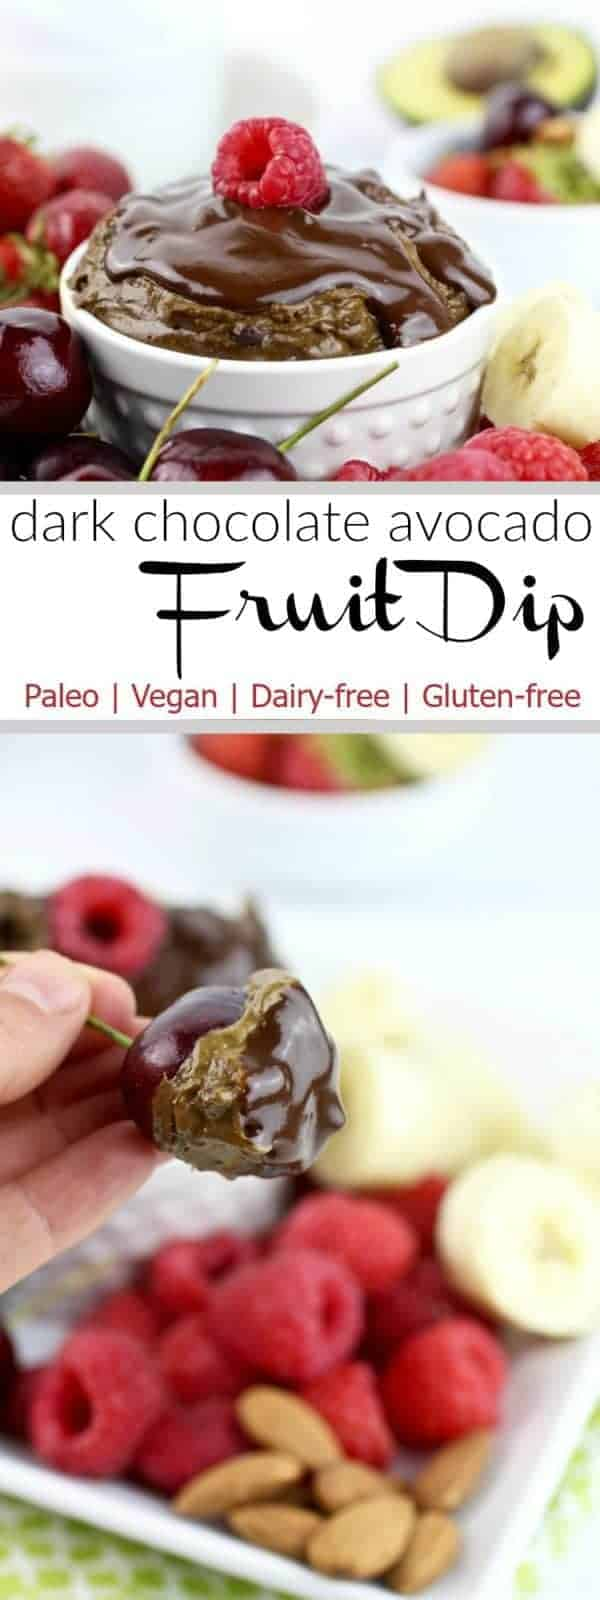 Fruit dipping just got a whole lot more fun and delicious with this healthy paleo & vegan-friendly Dark Chocolate Avocado Fruit Dip! | therealfoodrds.com